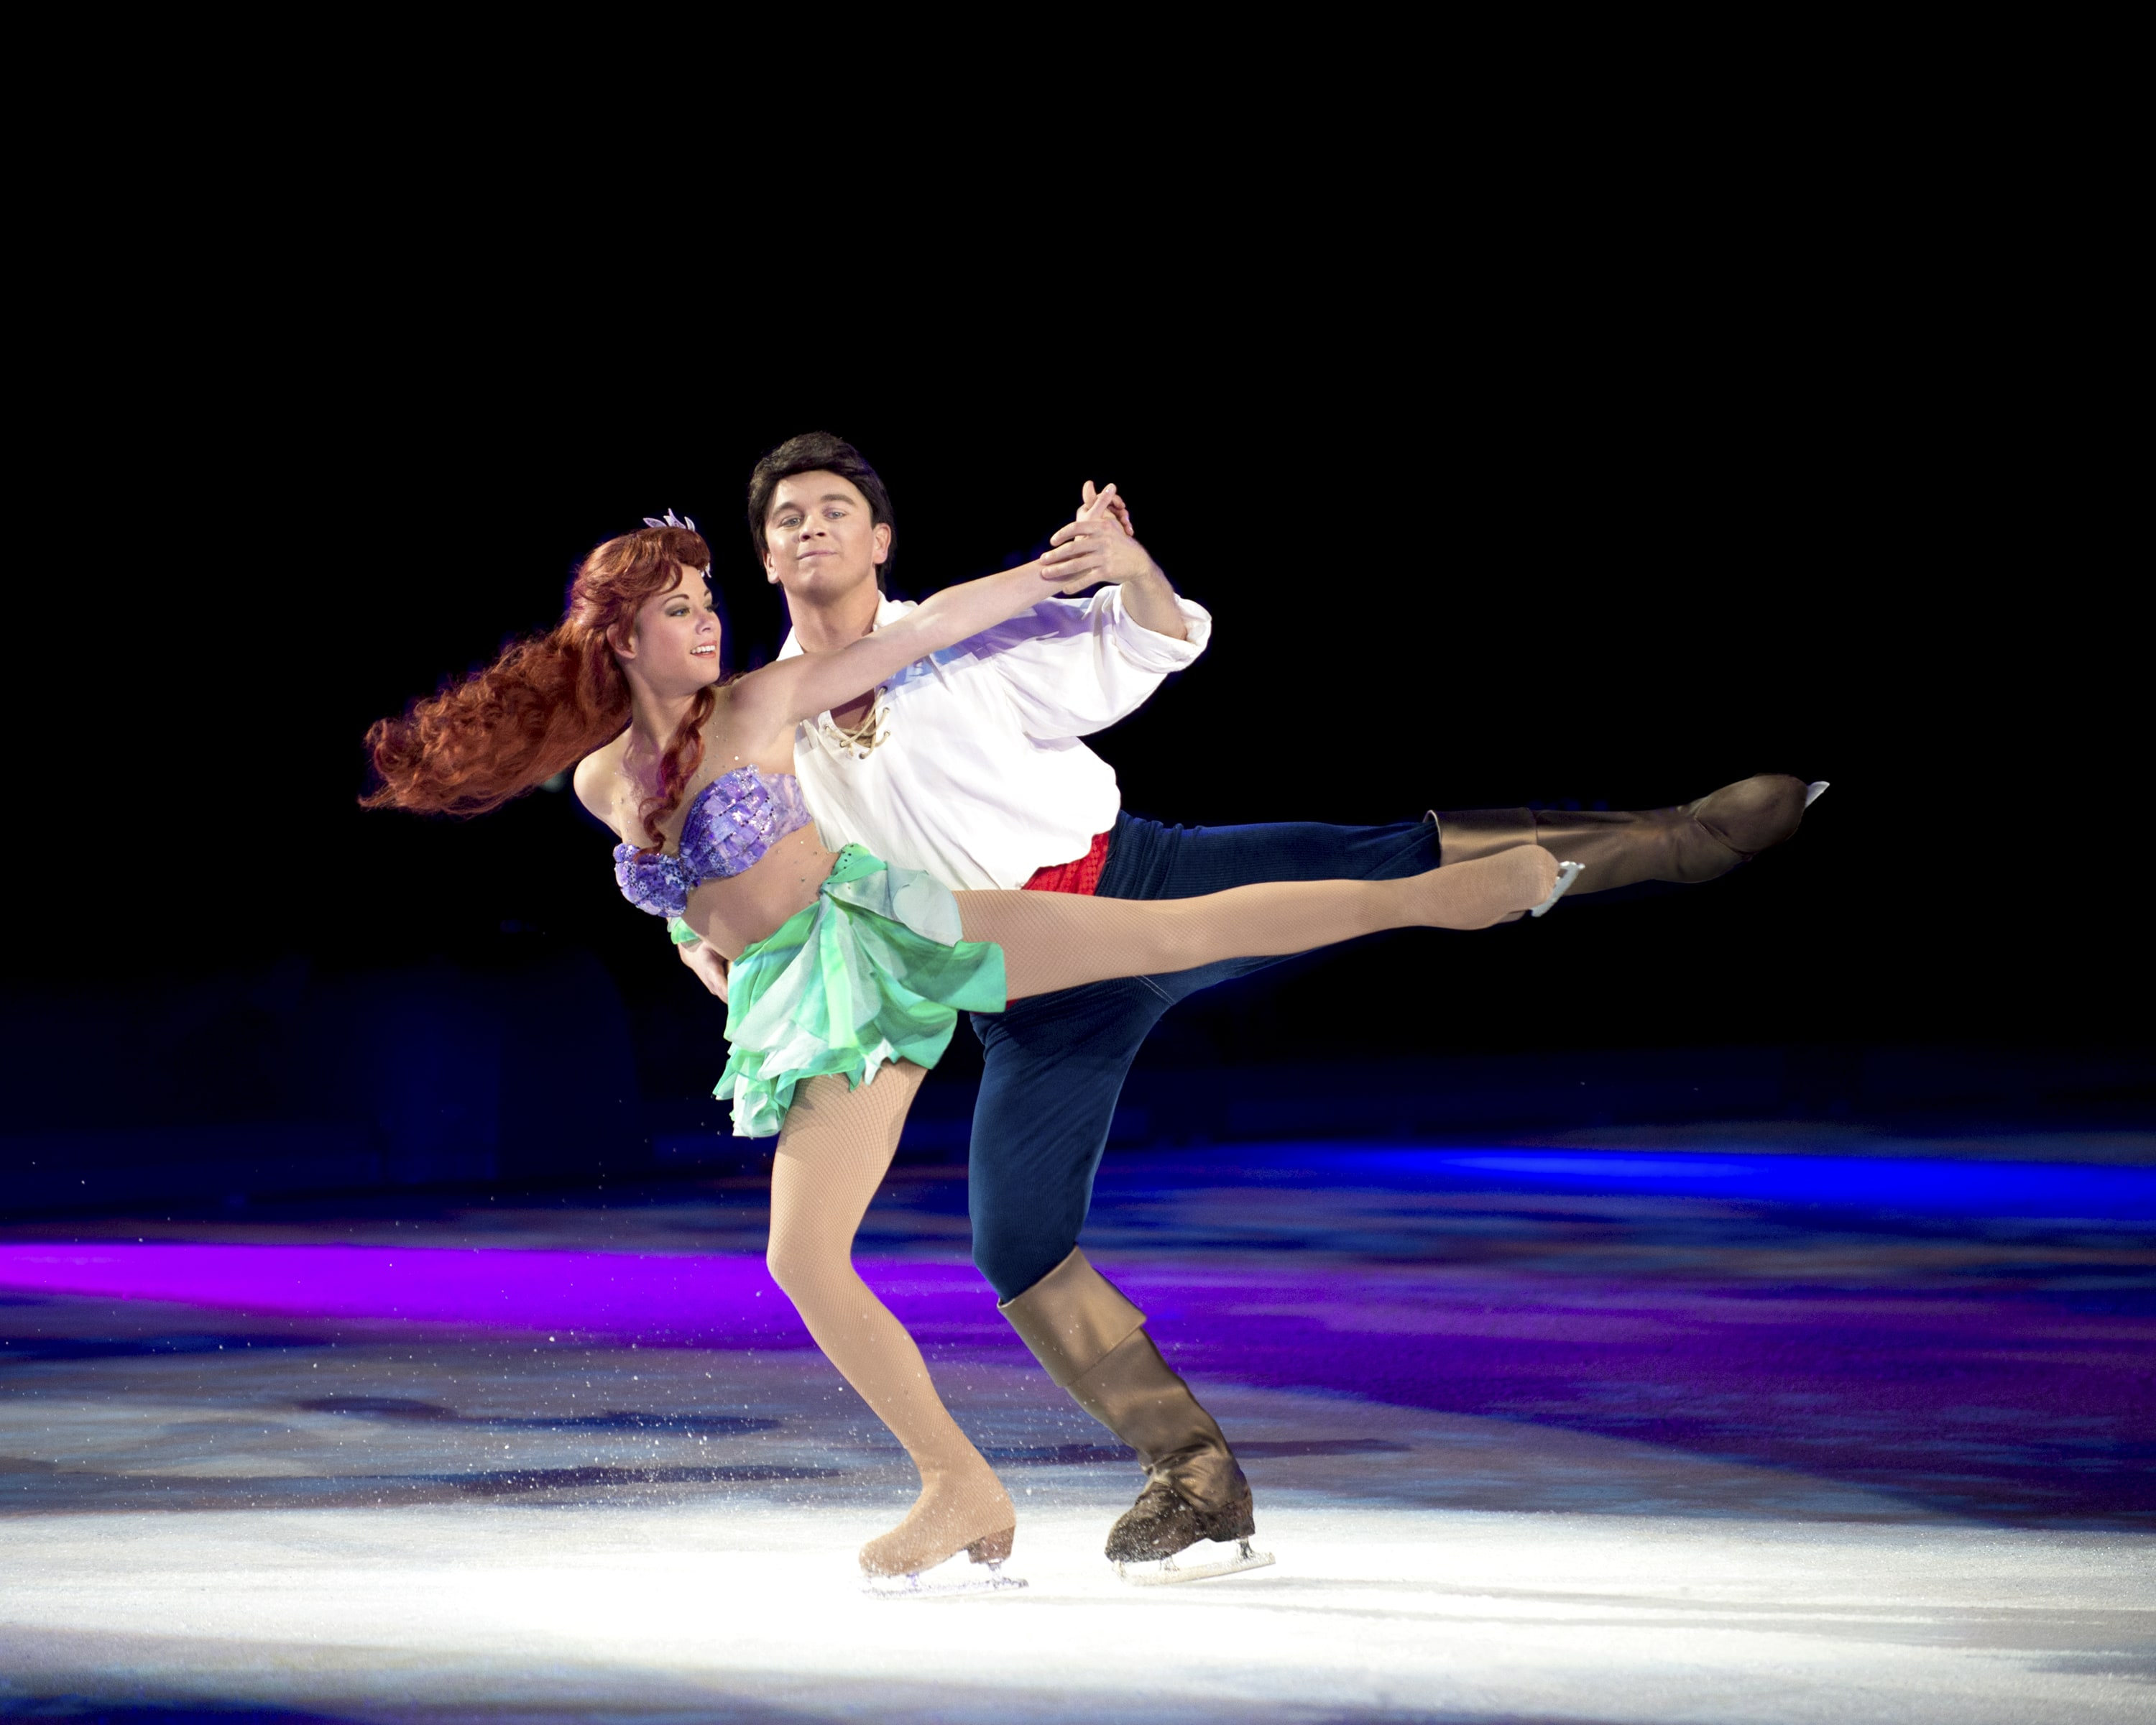 Ariel and Prince Eric duet